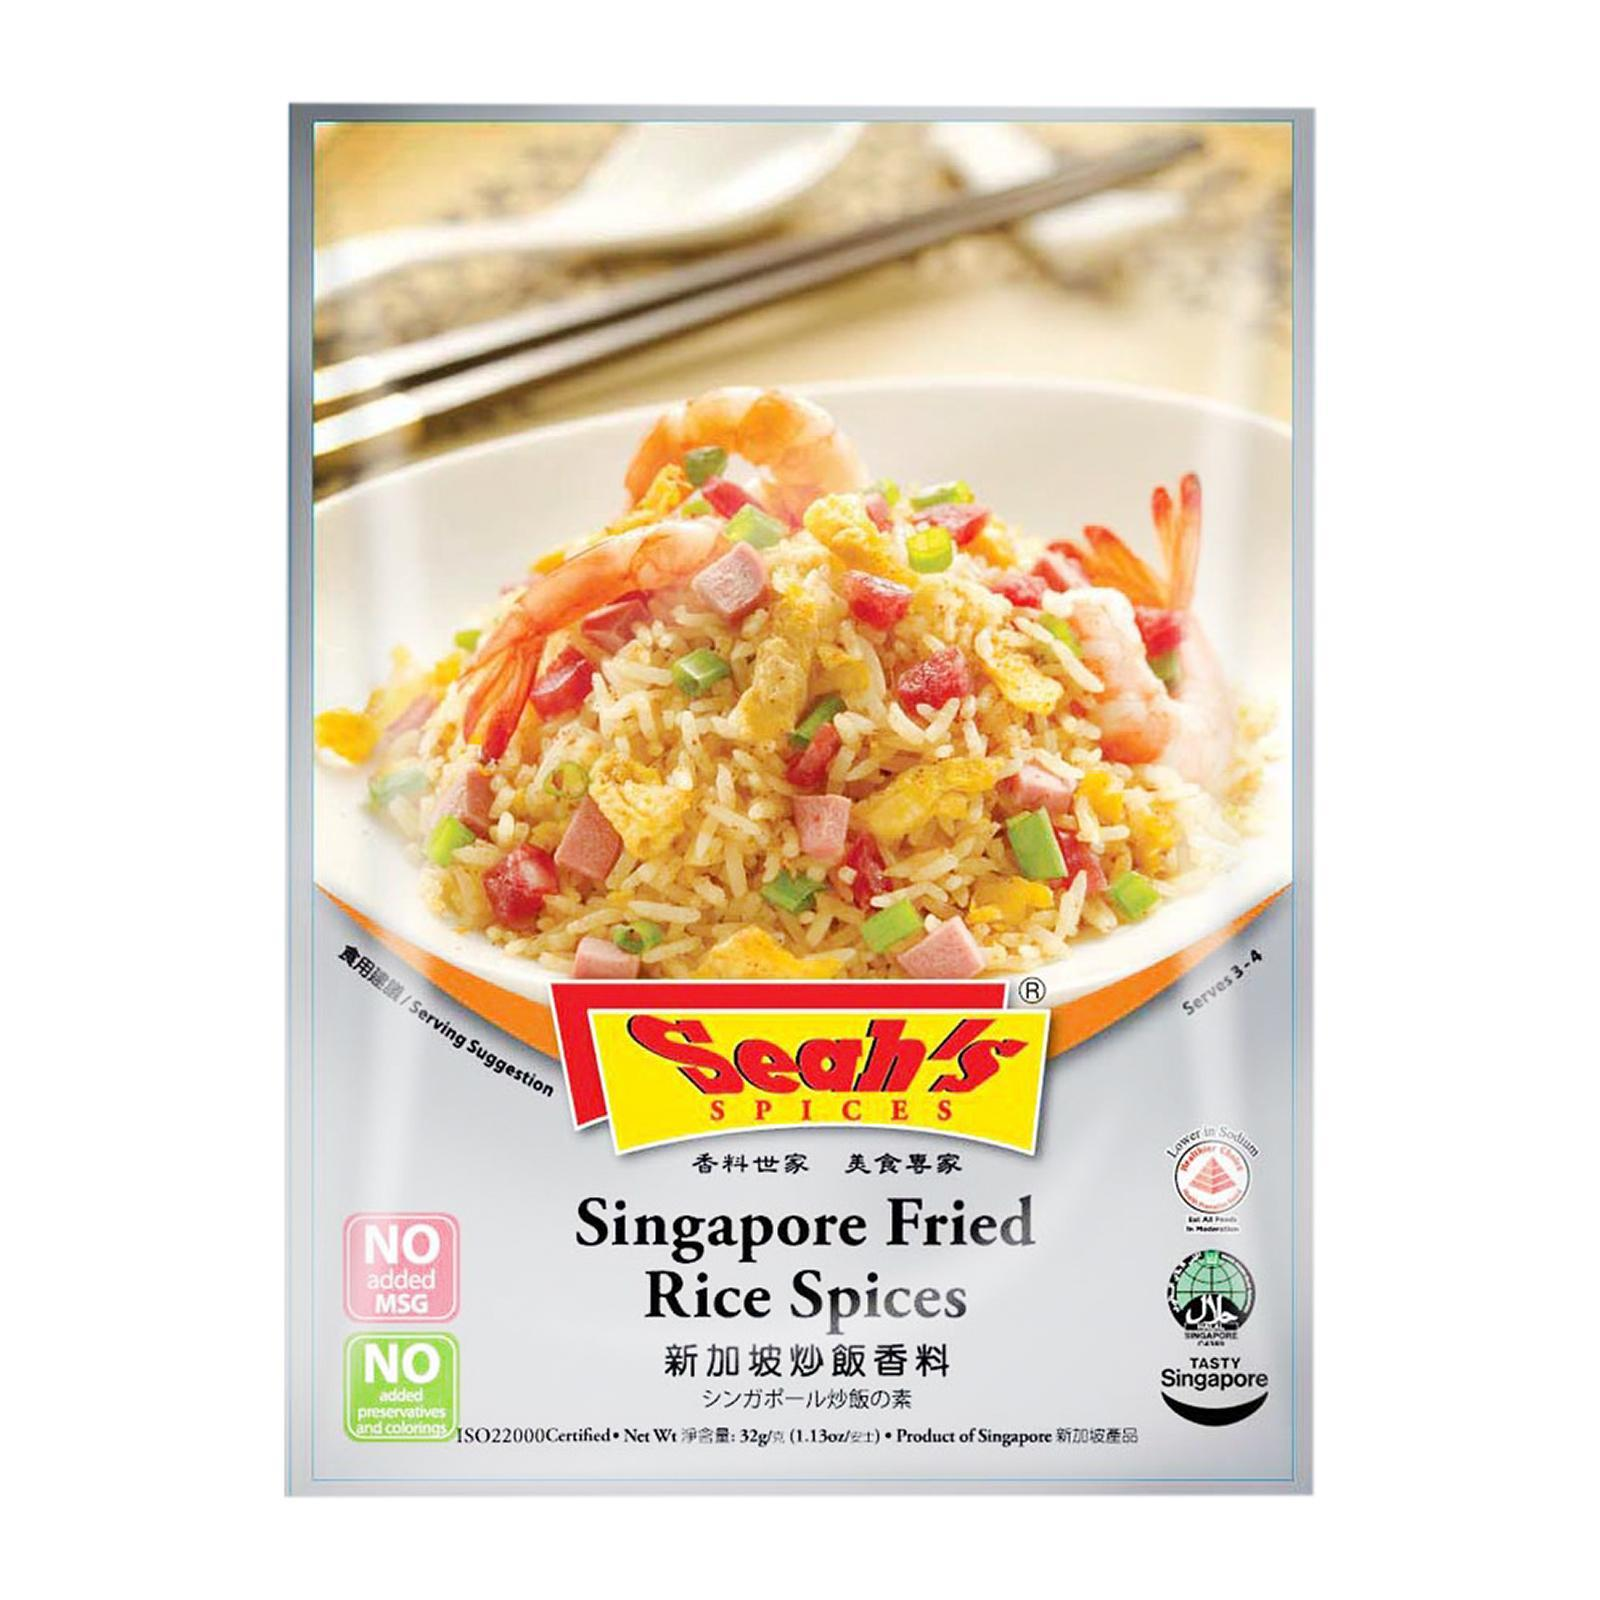 Seahs Spices - Singapore Fried Rice Spices 32g X 3 Pack (charges Includes Shipping Fee) By Best Buy Mini Mart.